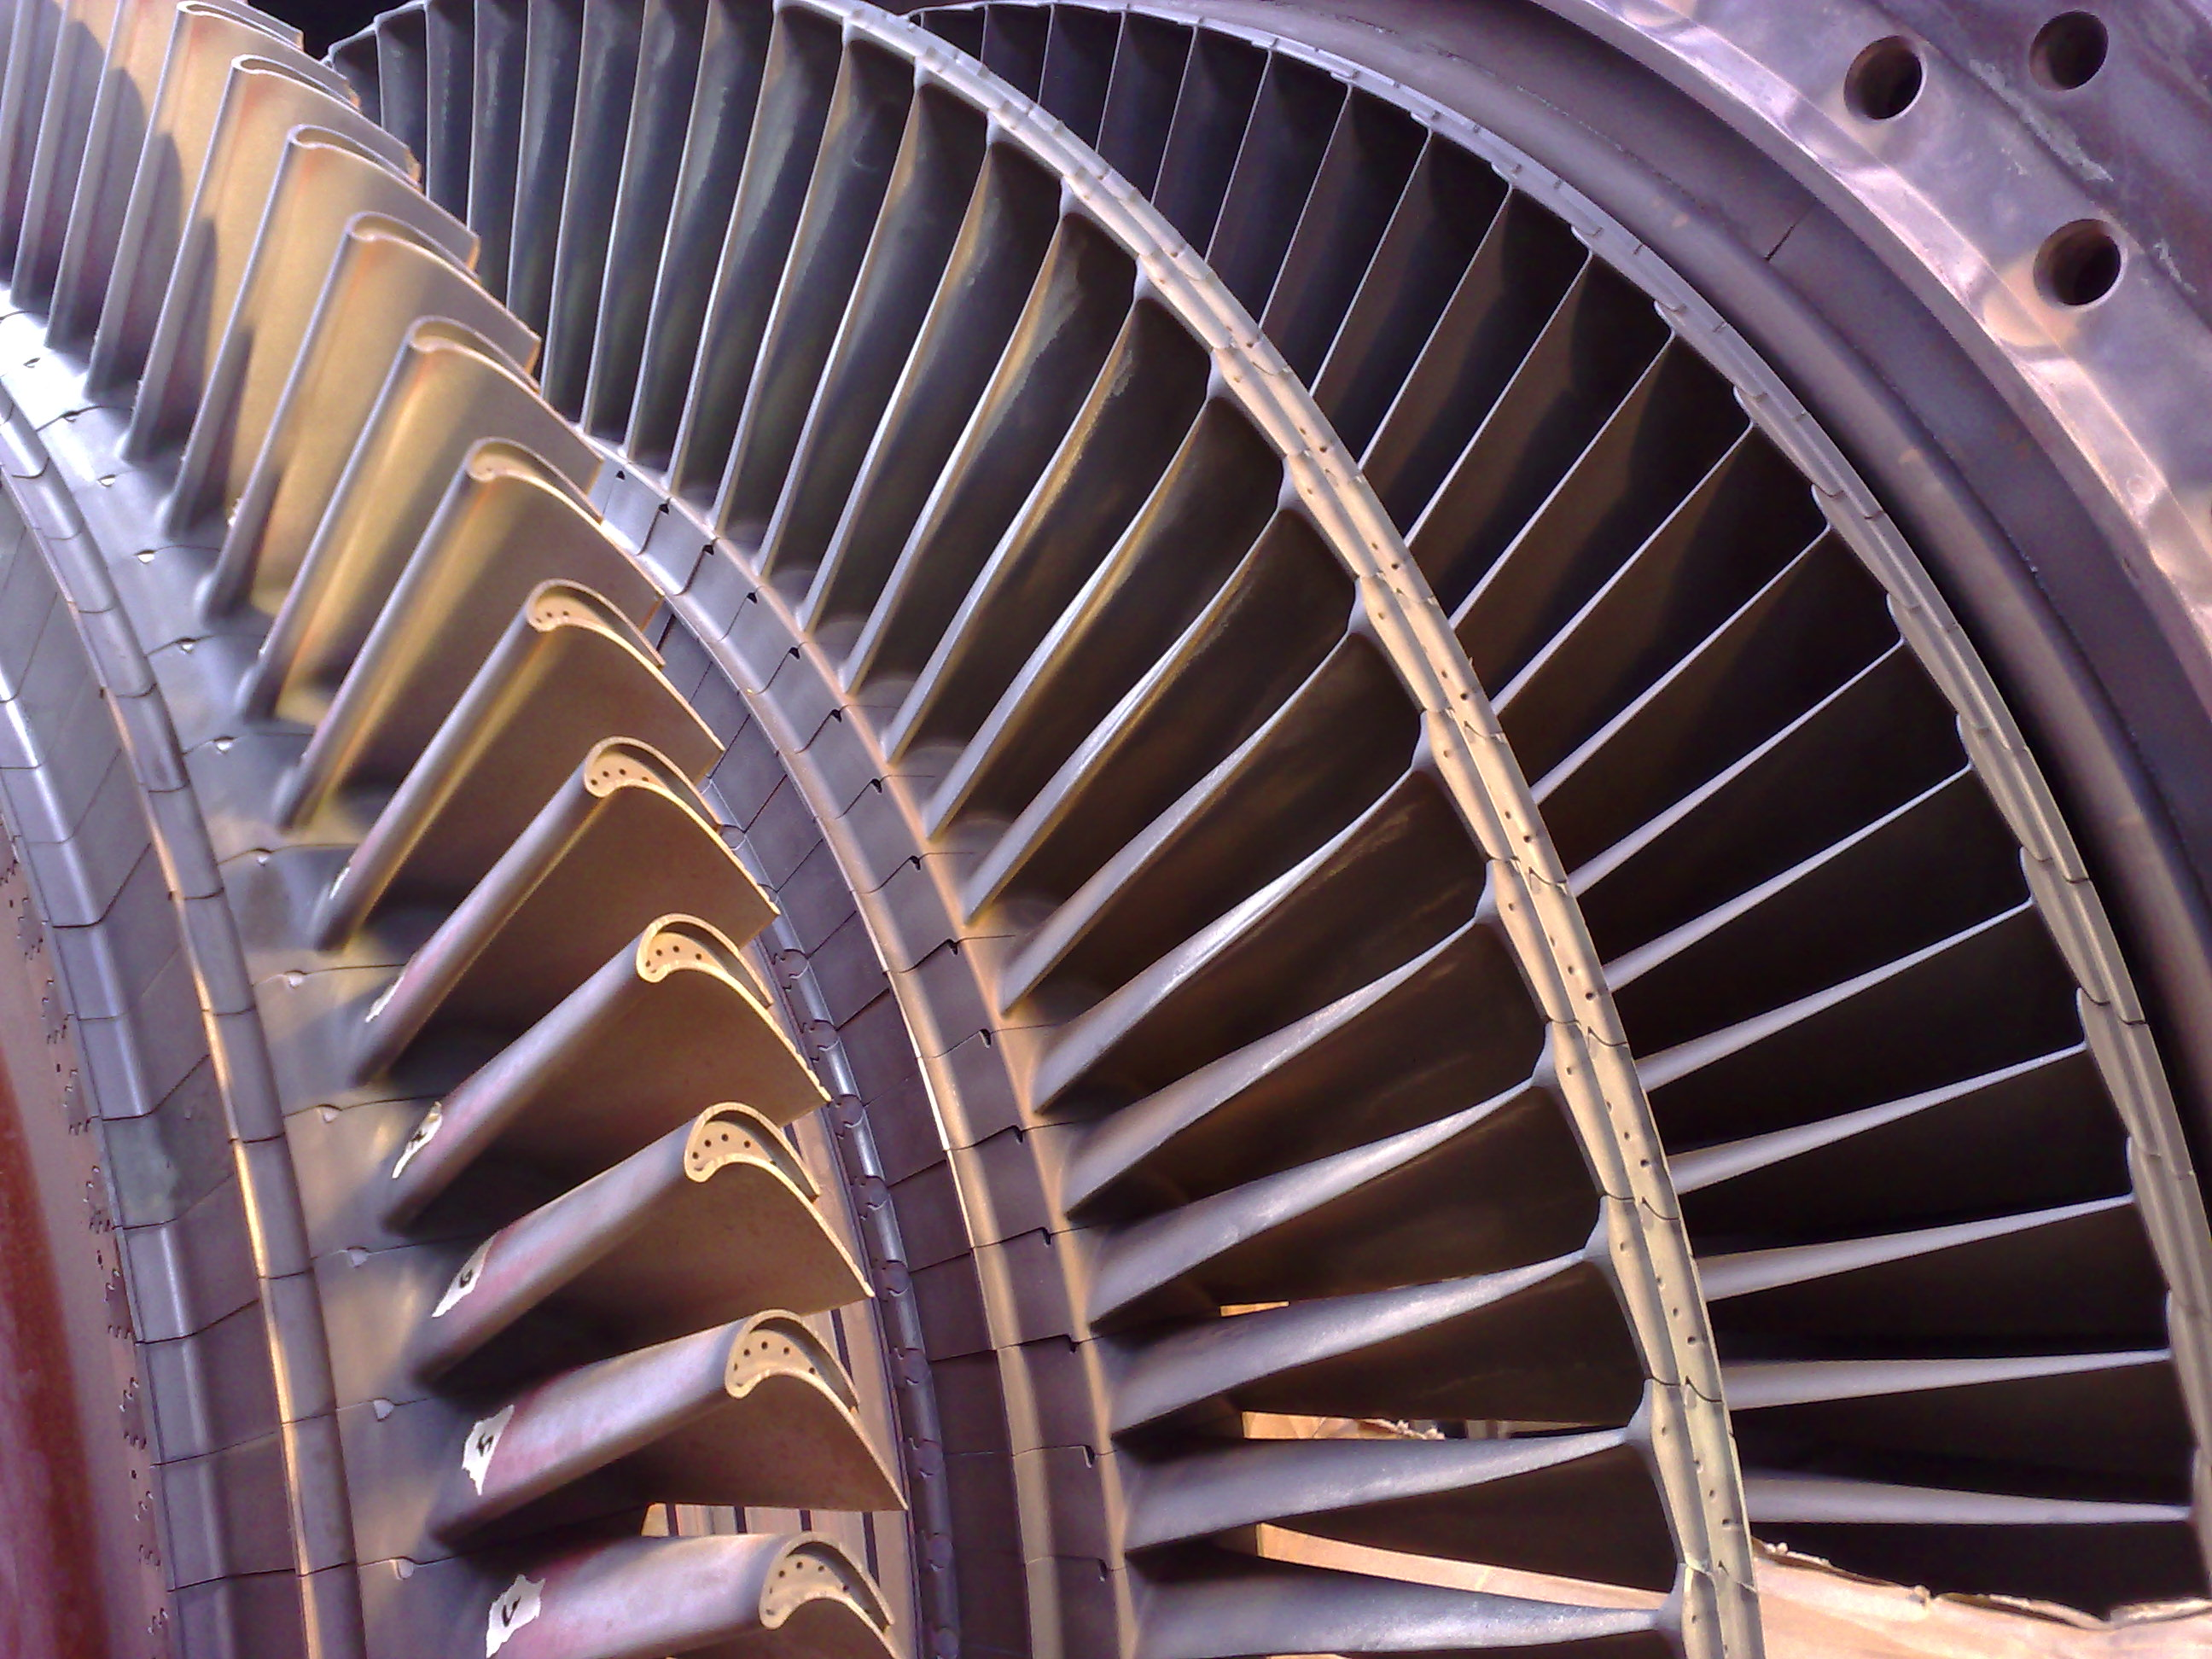 Blades of a Gas Turbine